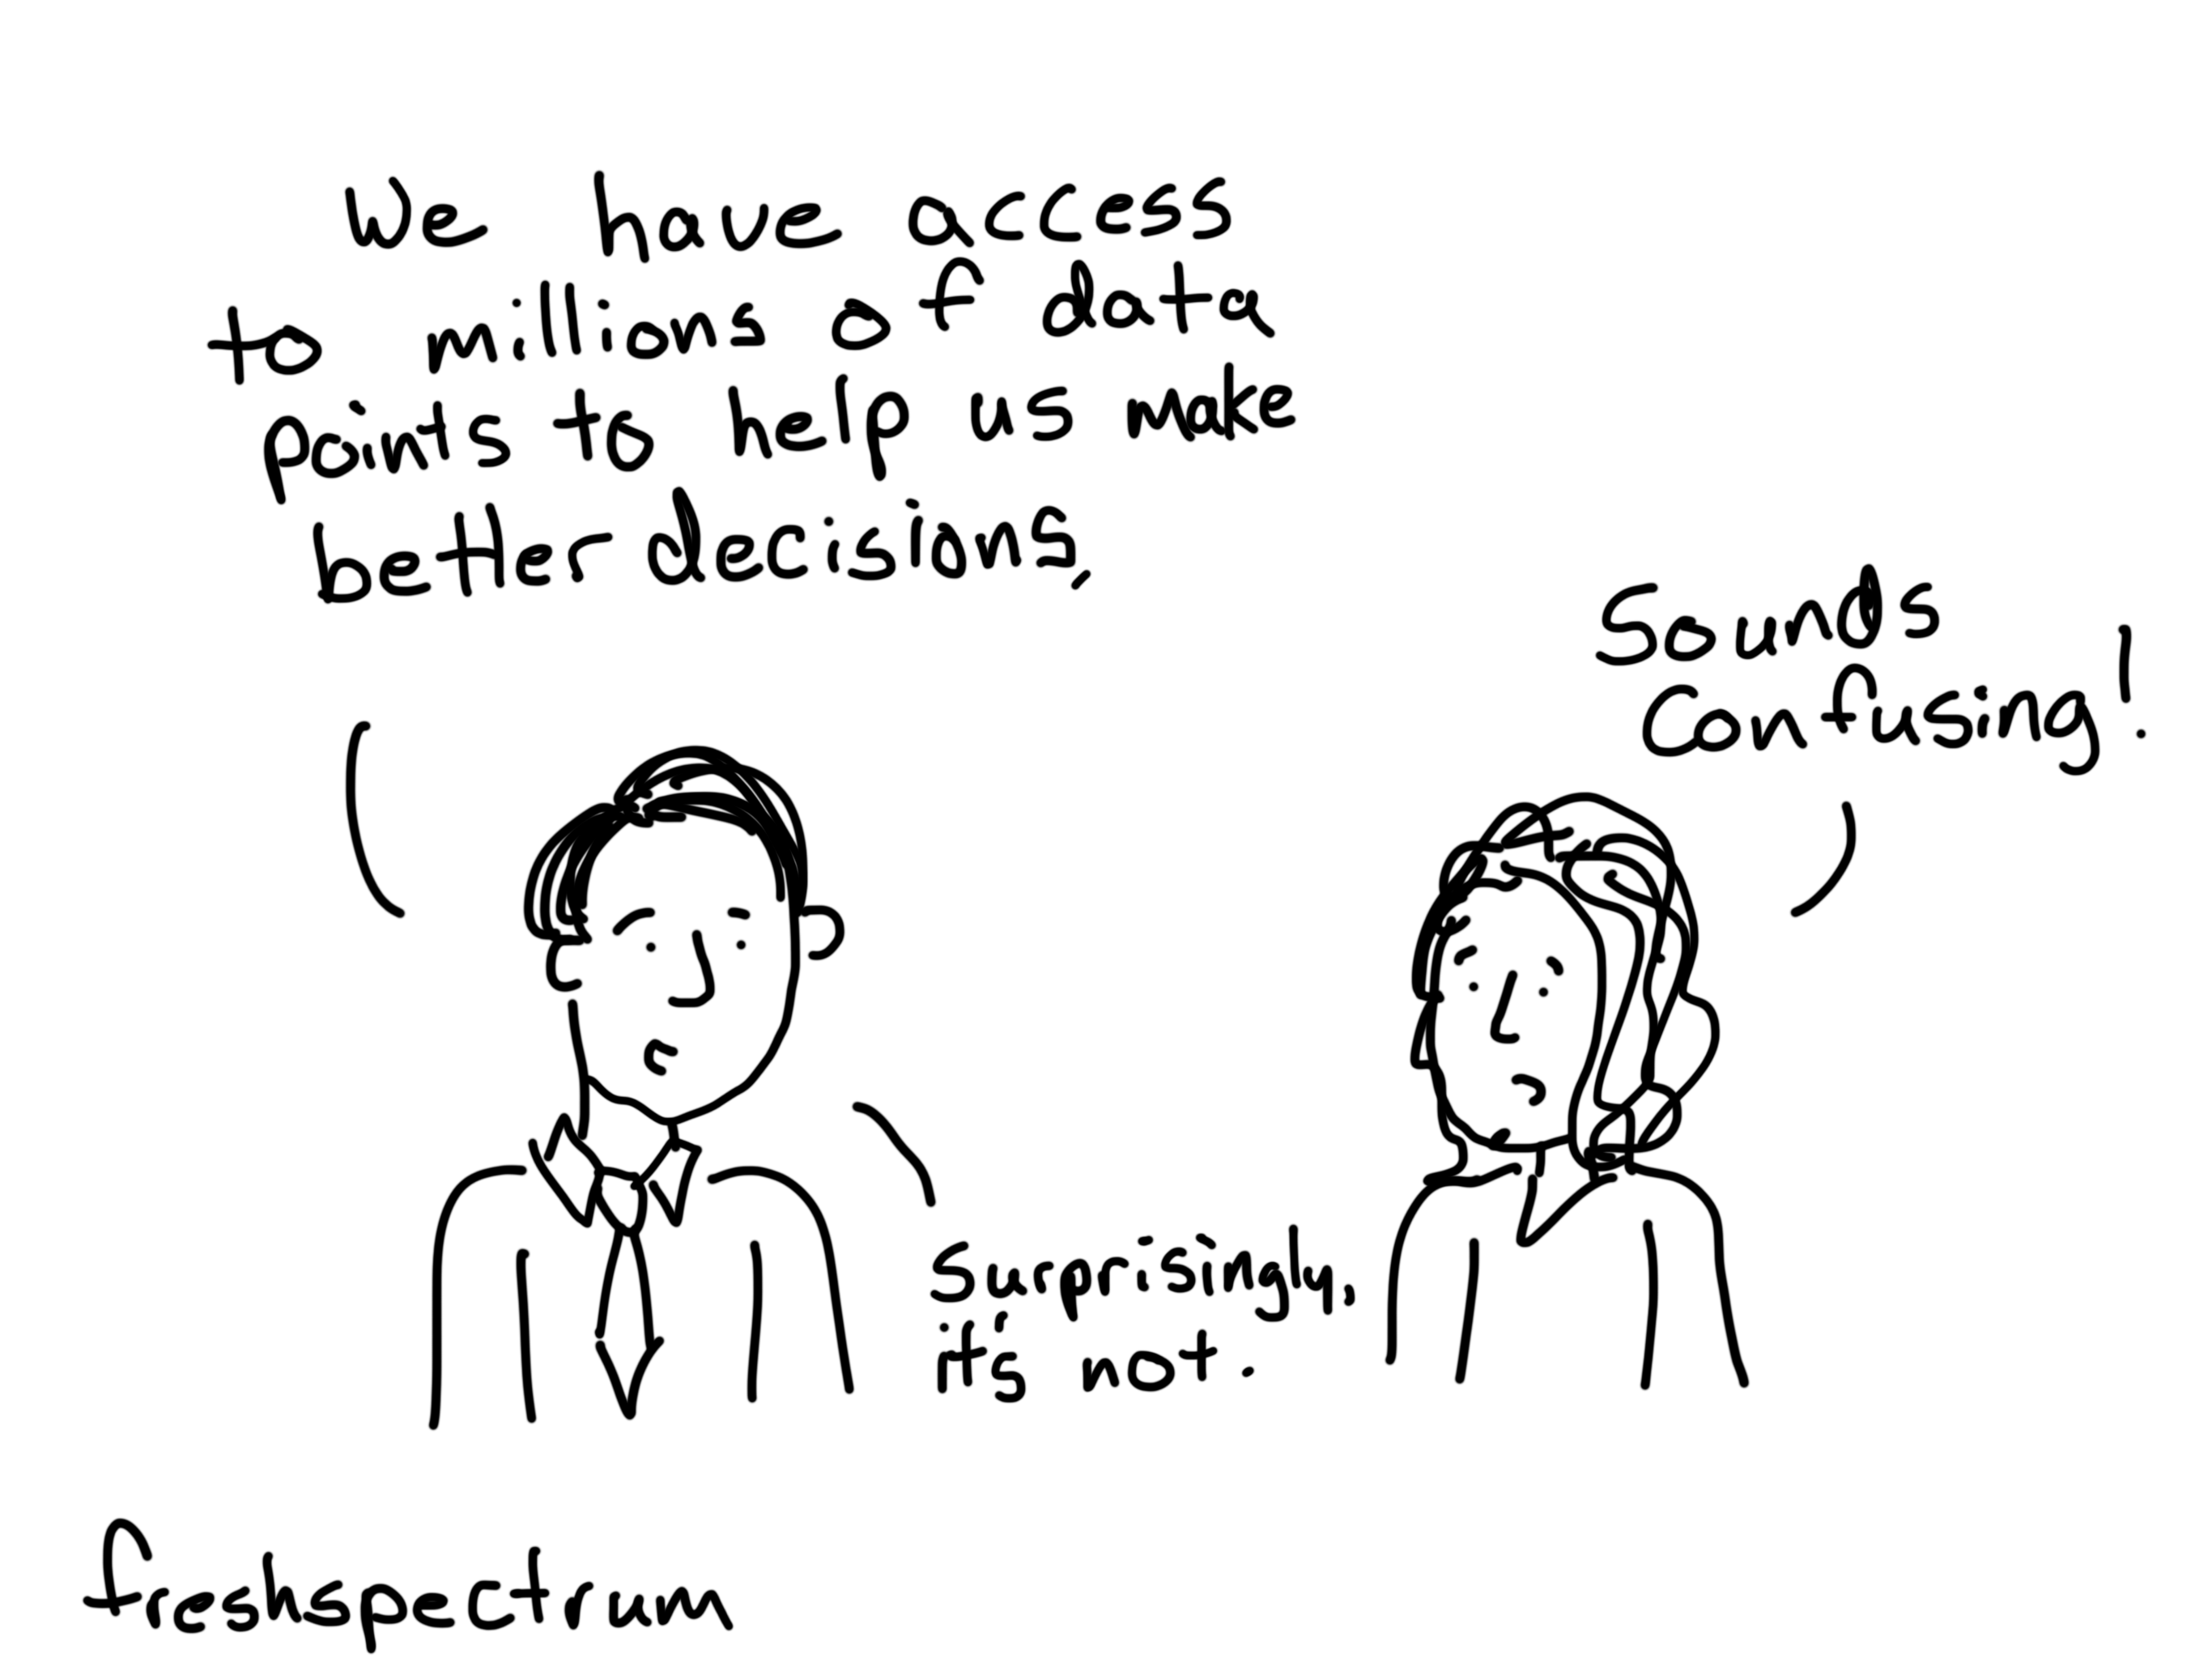 A cartoon about having big data access that is not confusing.